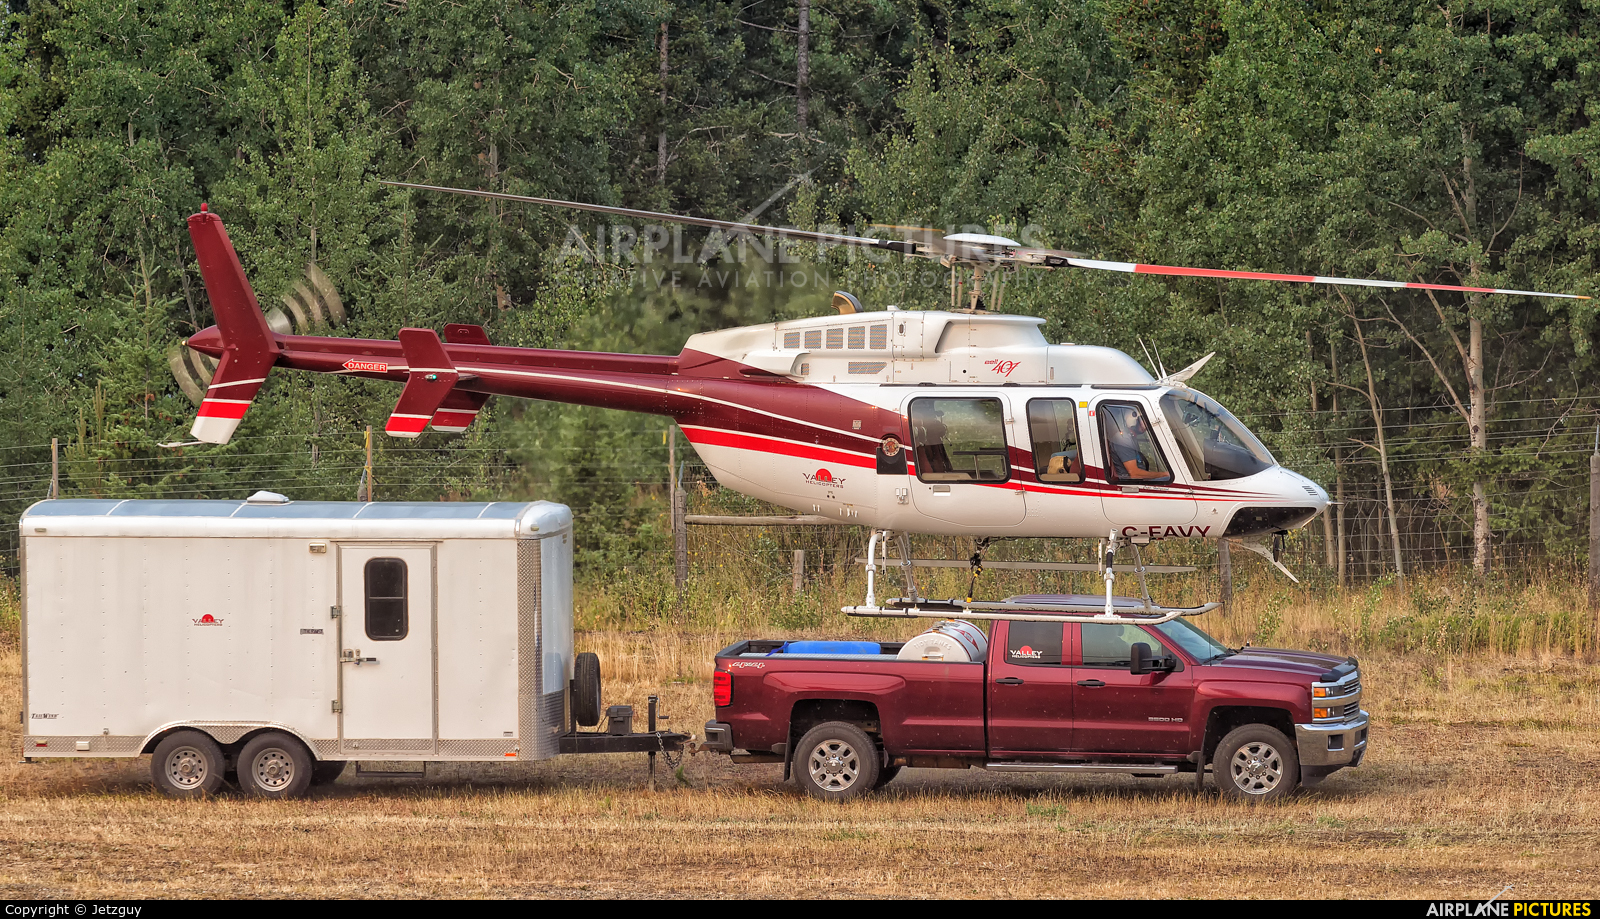 Valley Helicopters C-FAVY aircraft at 108 Mile Ranch, BC